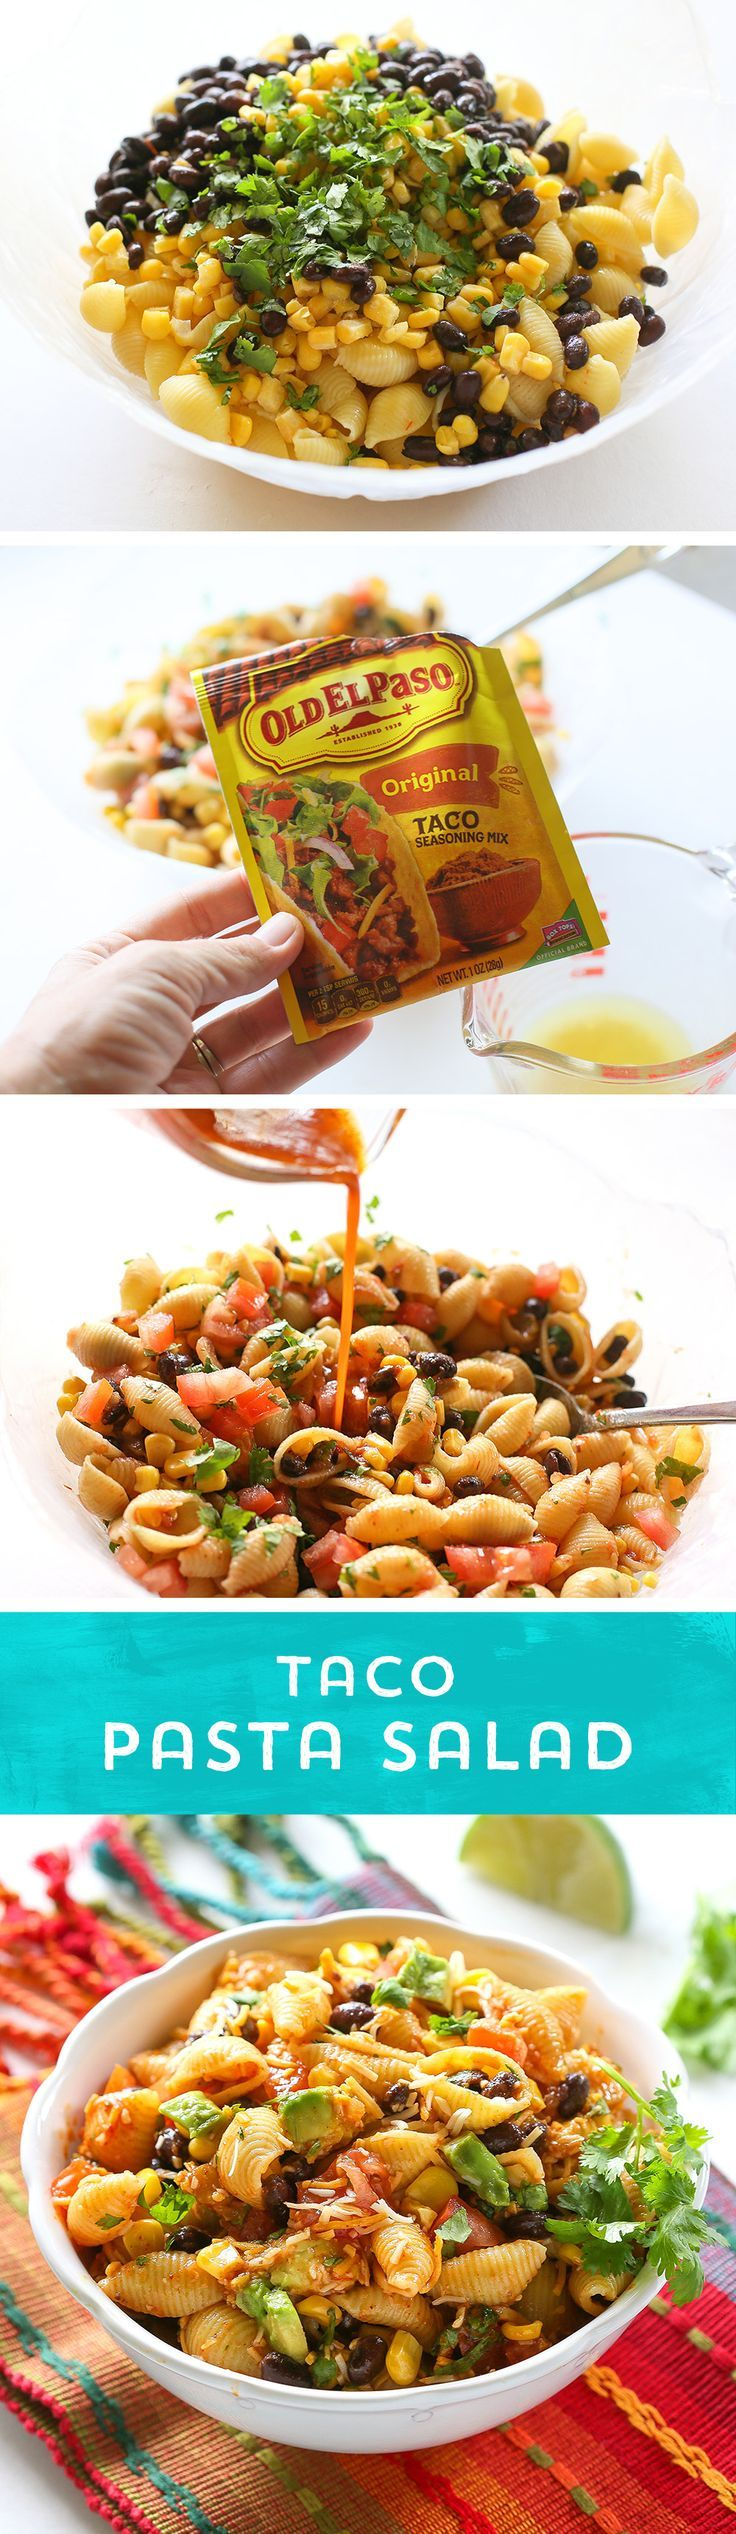 Need something to bring to your pot luck or picnic? This Taco Pasta Salad from /GirlWhoAte/ is perfect! It comes together quickly, and you can control the spice! Stand out at the party with this pasta salad with southwestern flair!